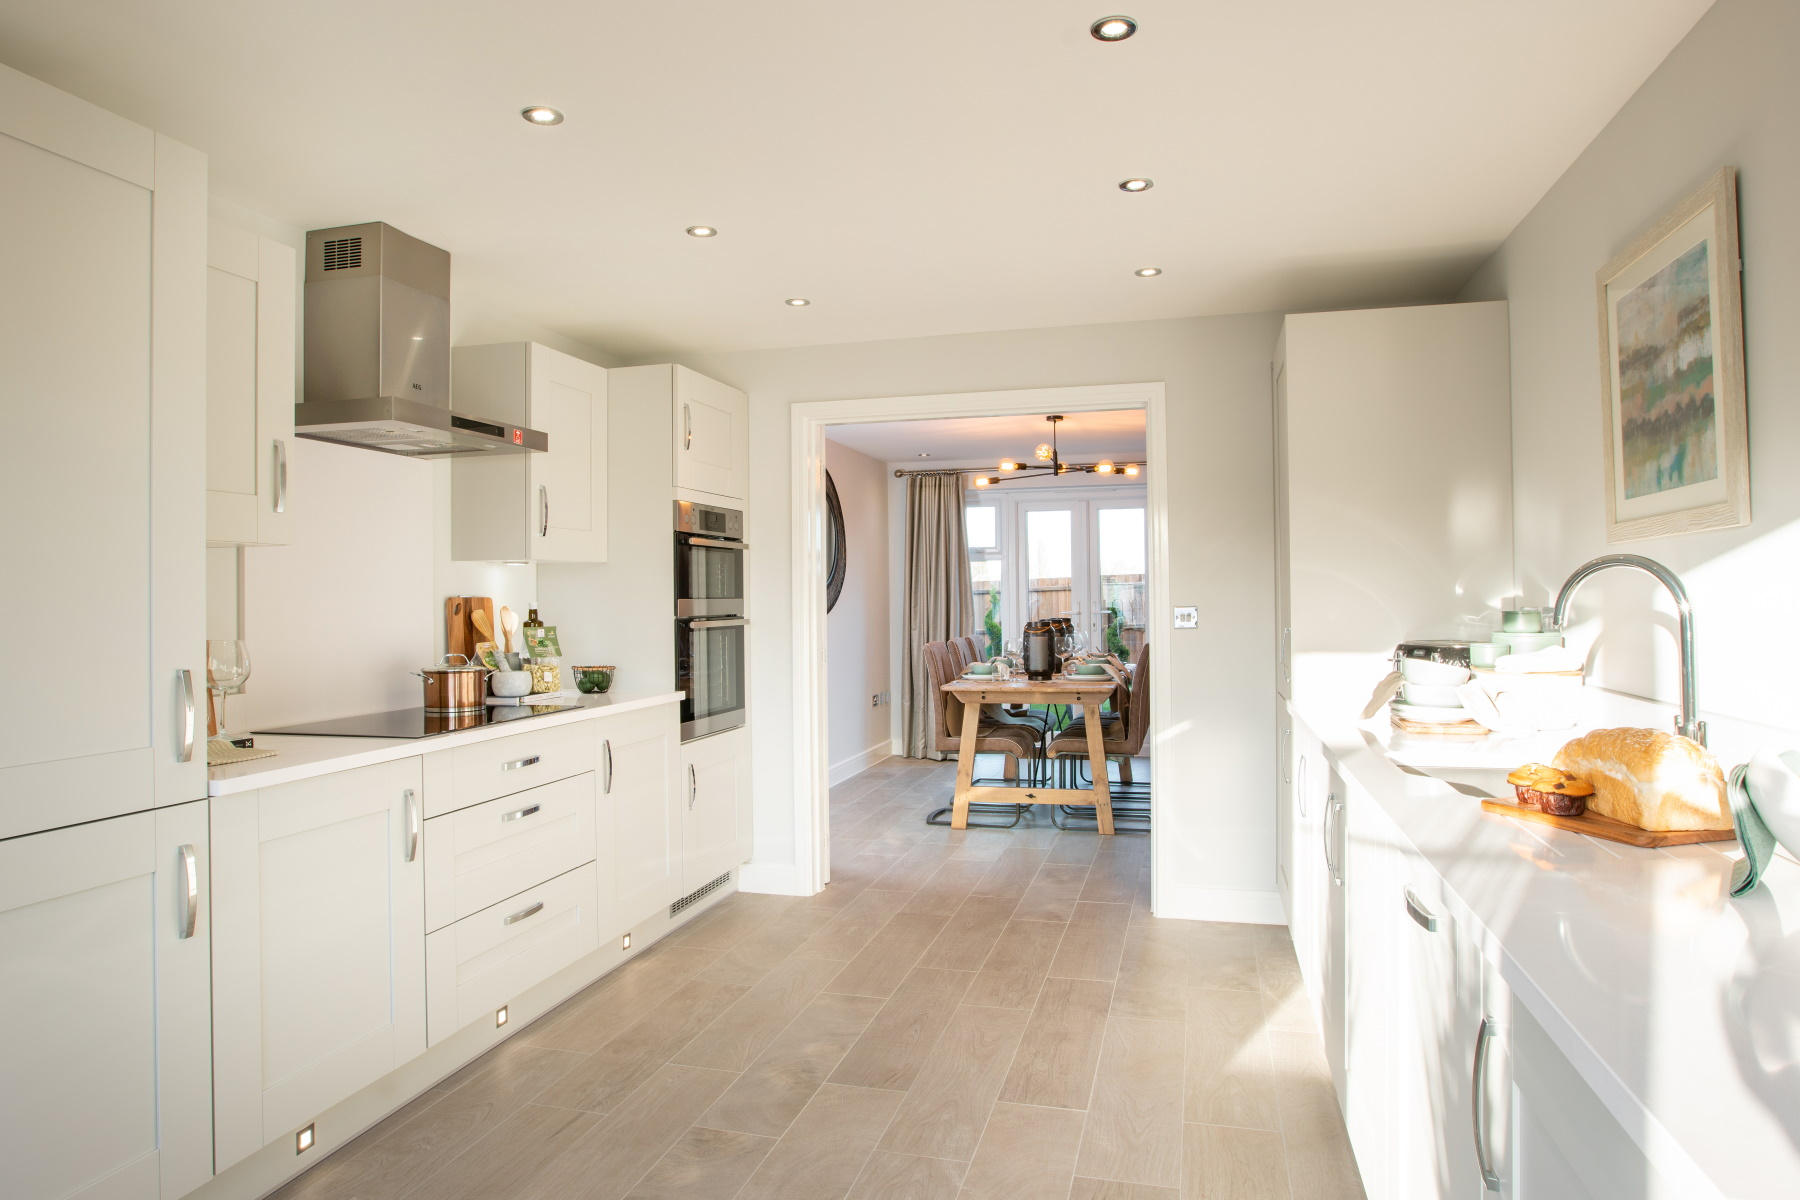 TW Exeter - Cranbrook - Thornford example kitchen 2